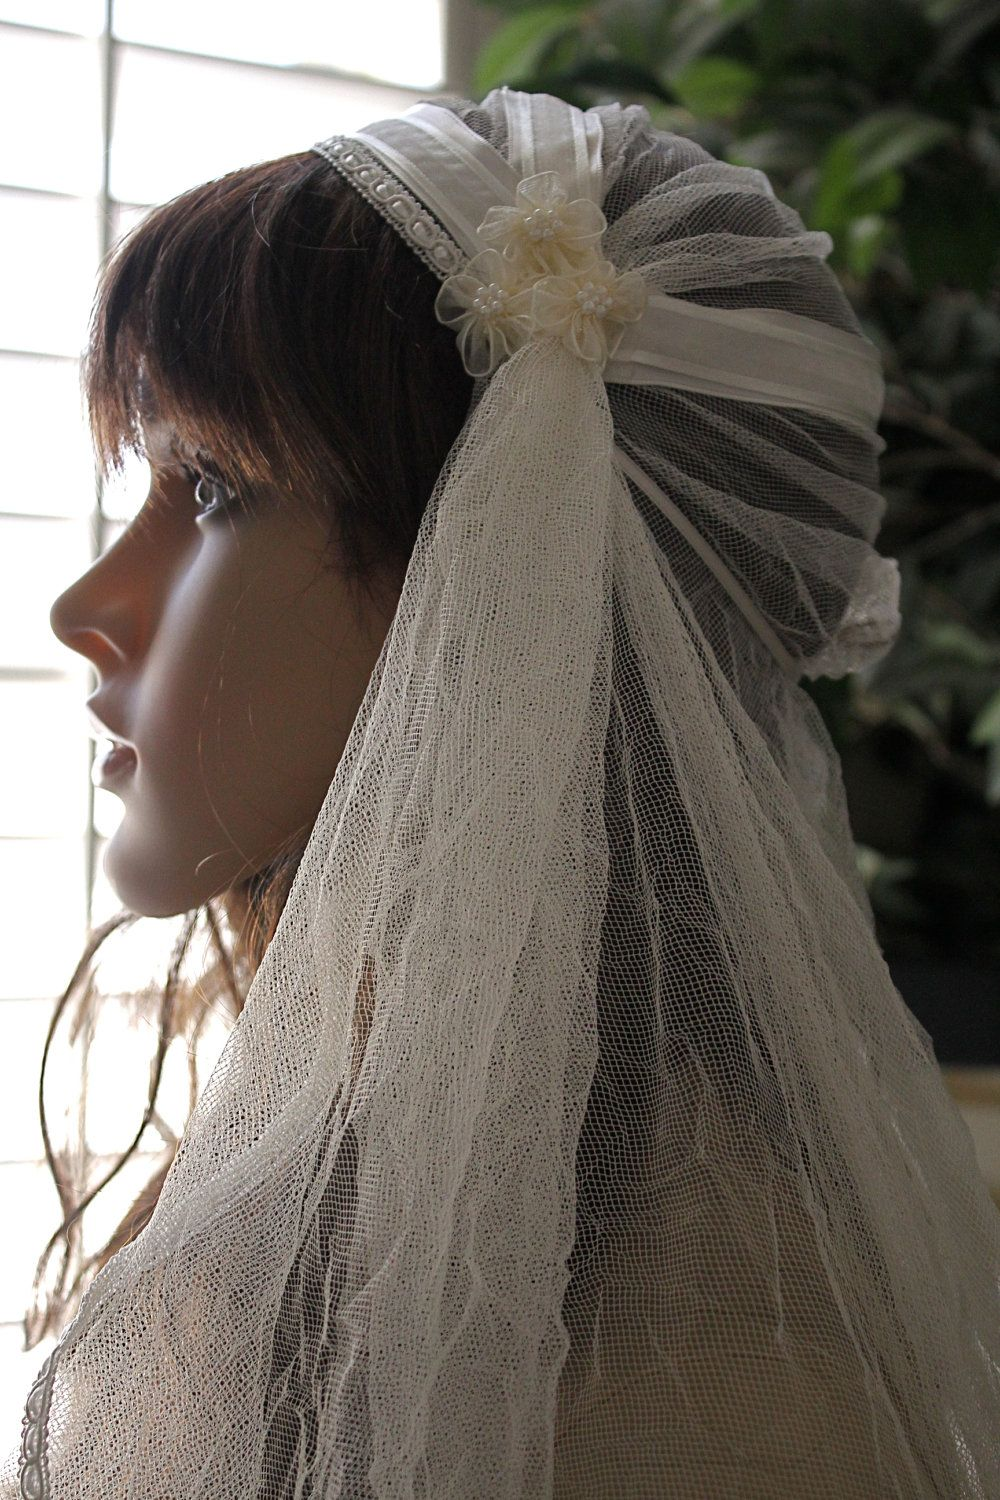 Juliet Bridal Cap Veil 90 Inch Ivory Crushed Tulle With Satin